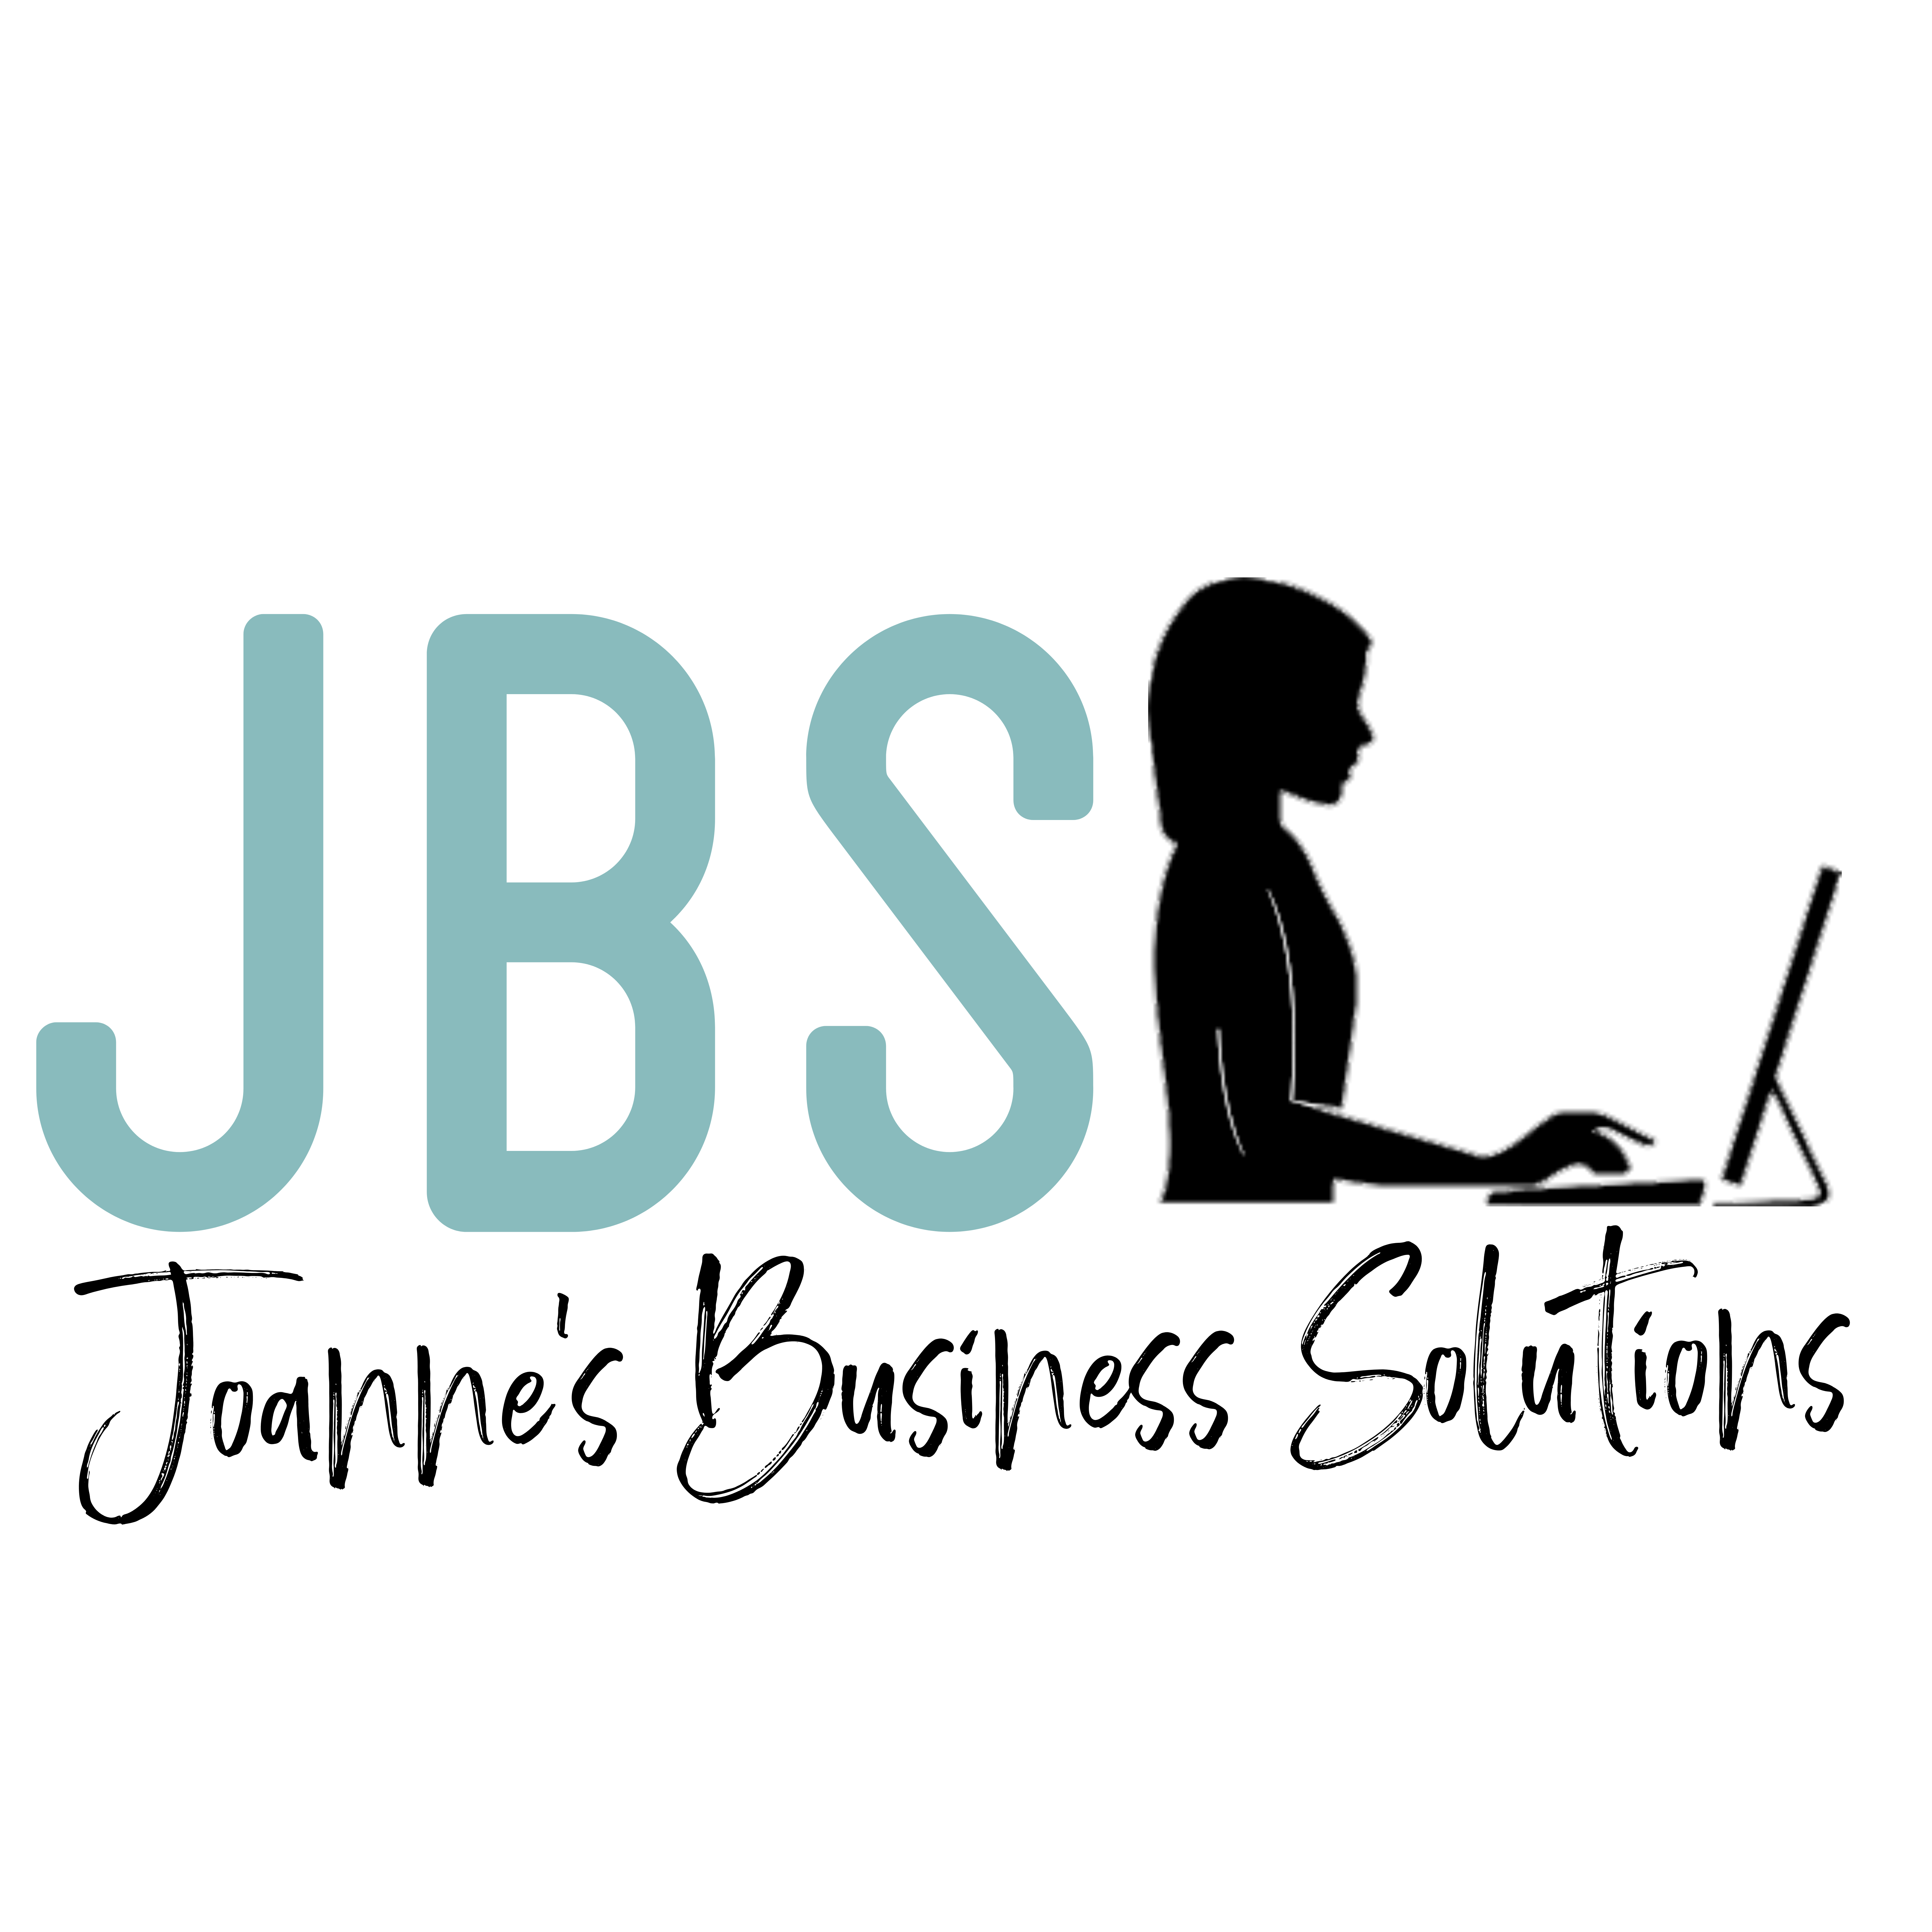 Joanne's Business Solutions